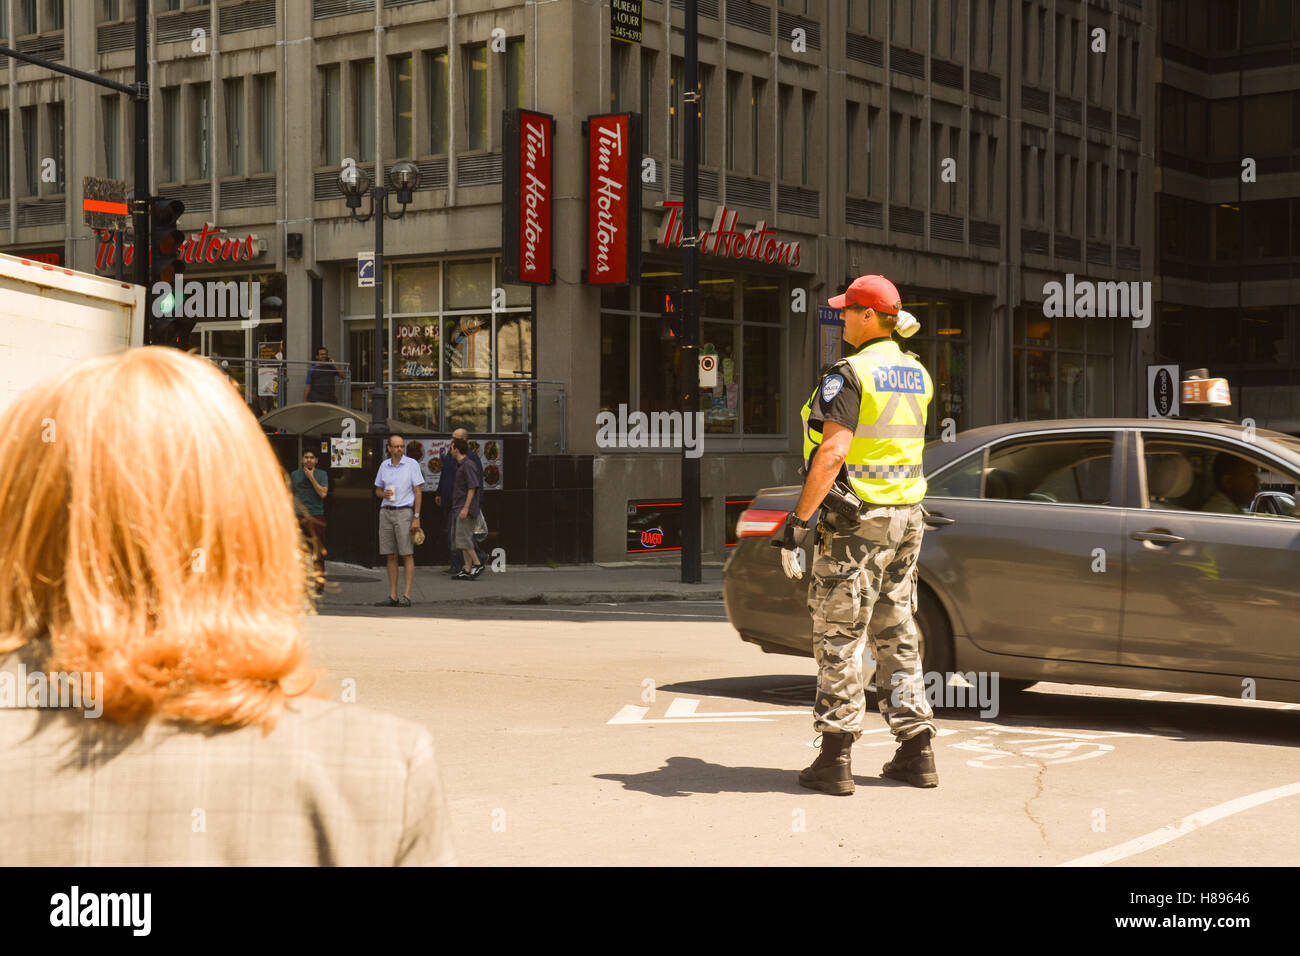 Montreal police officer directing managing traffic at intersection of Boulevard Robert-Bourassa and Rue Sherbrooke - Stock Image